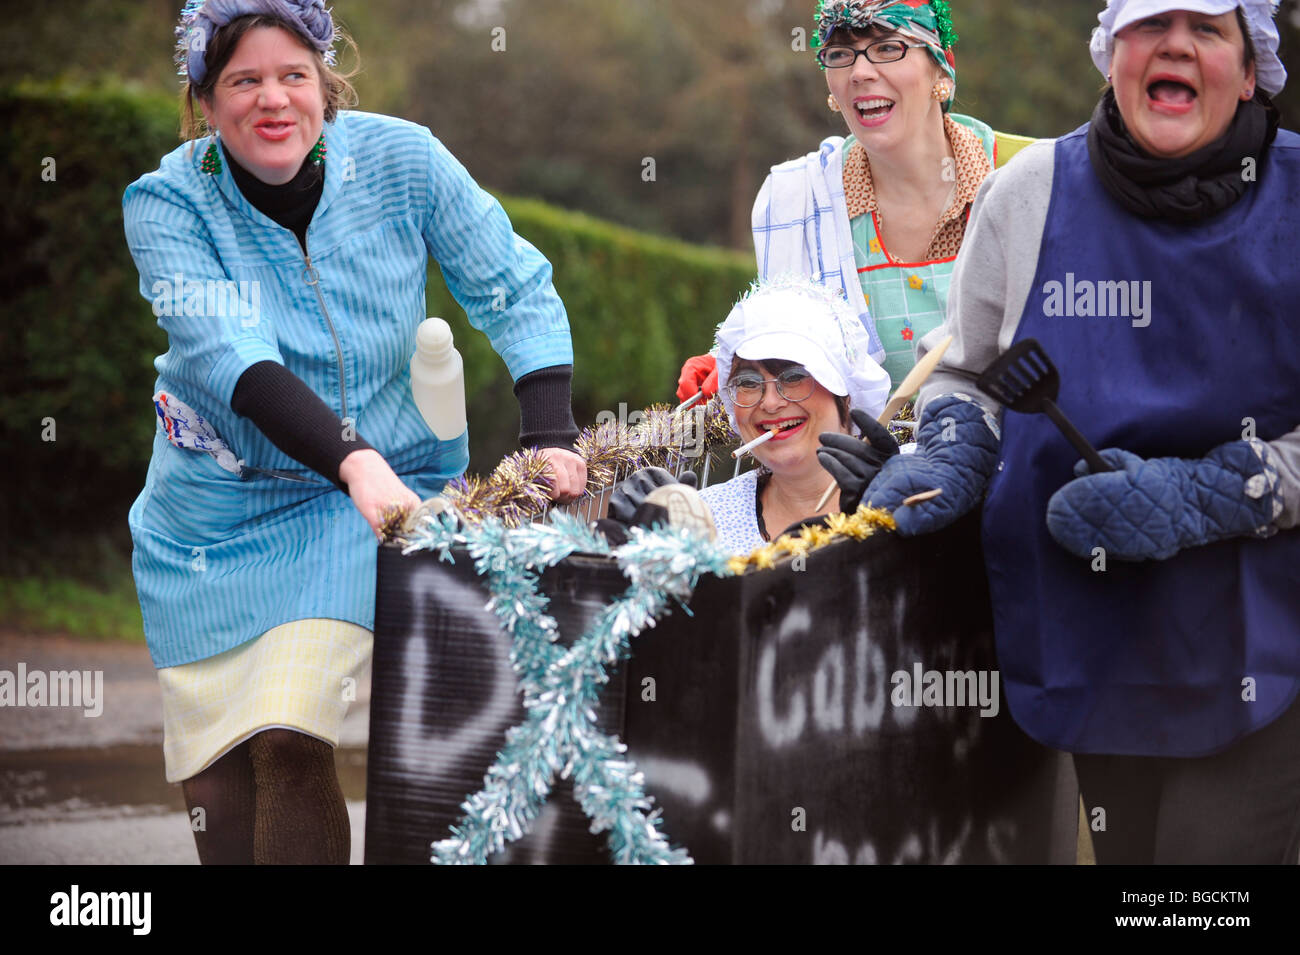 Villagers compete in their annual Boxing Day pram race event. East Hoathly near Lewes, UK. Picture Jim Holden. - Stock Image